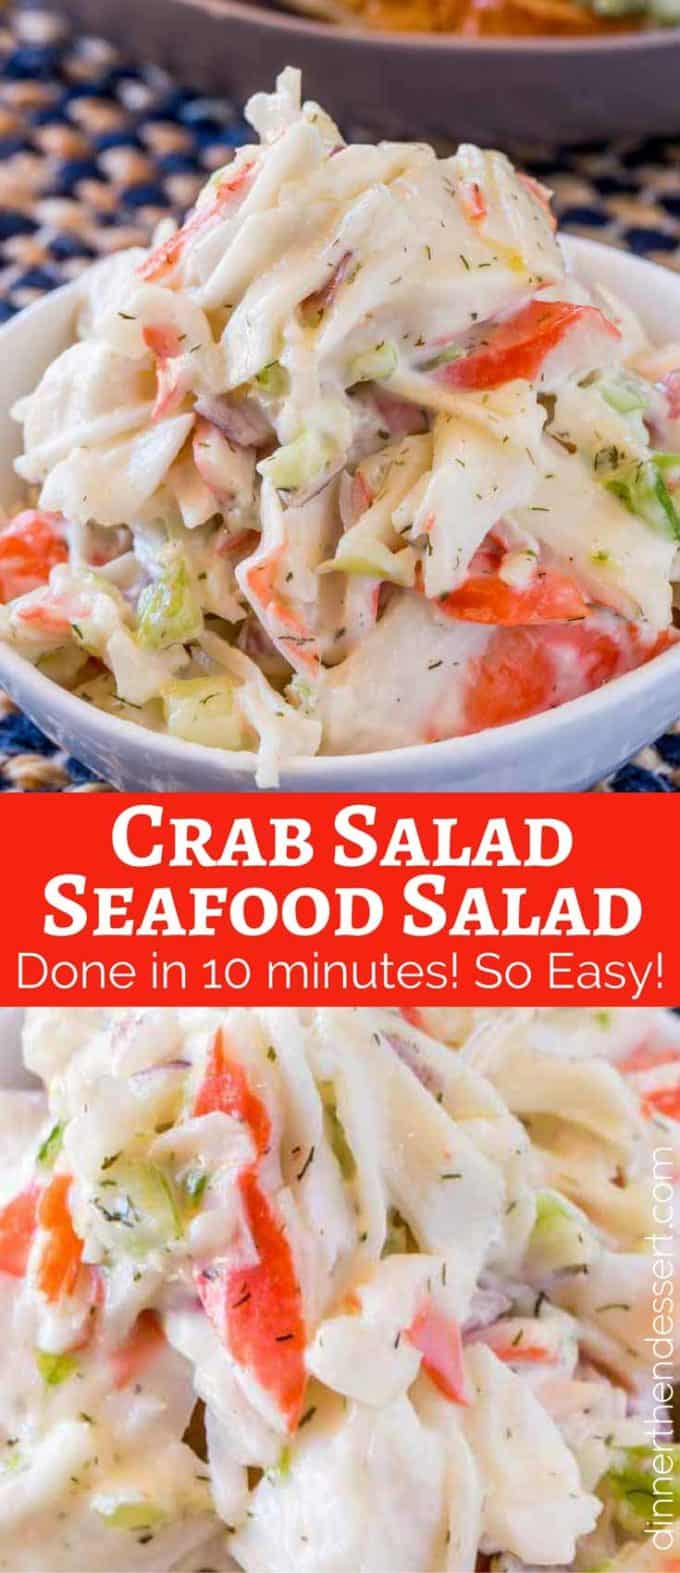 Crab Salad Seafood Salad Dinner Then Dessert